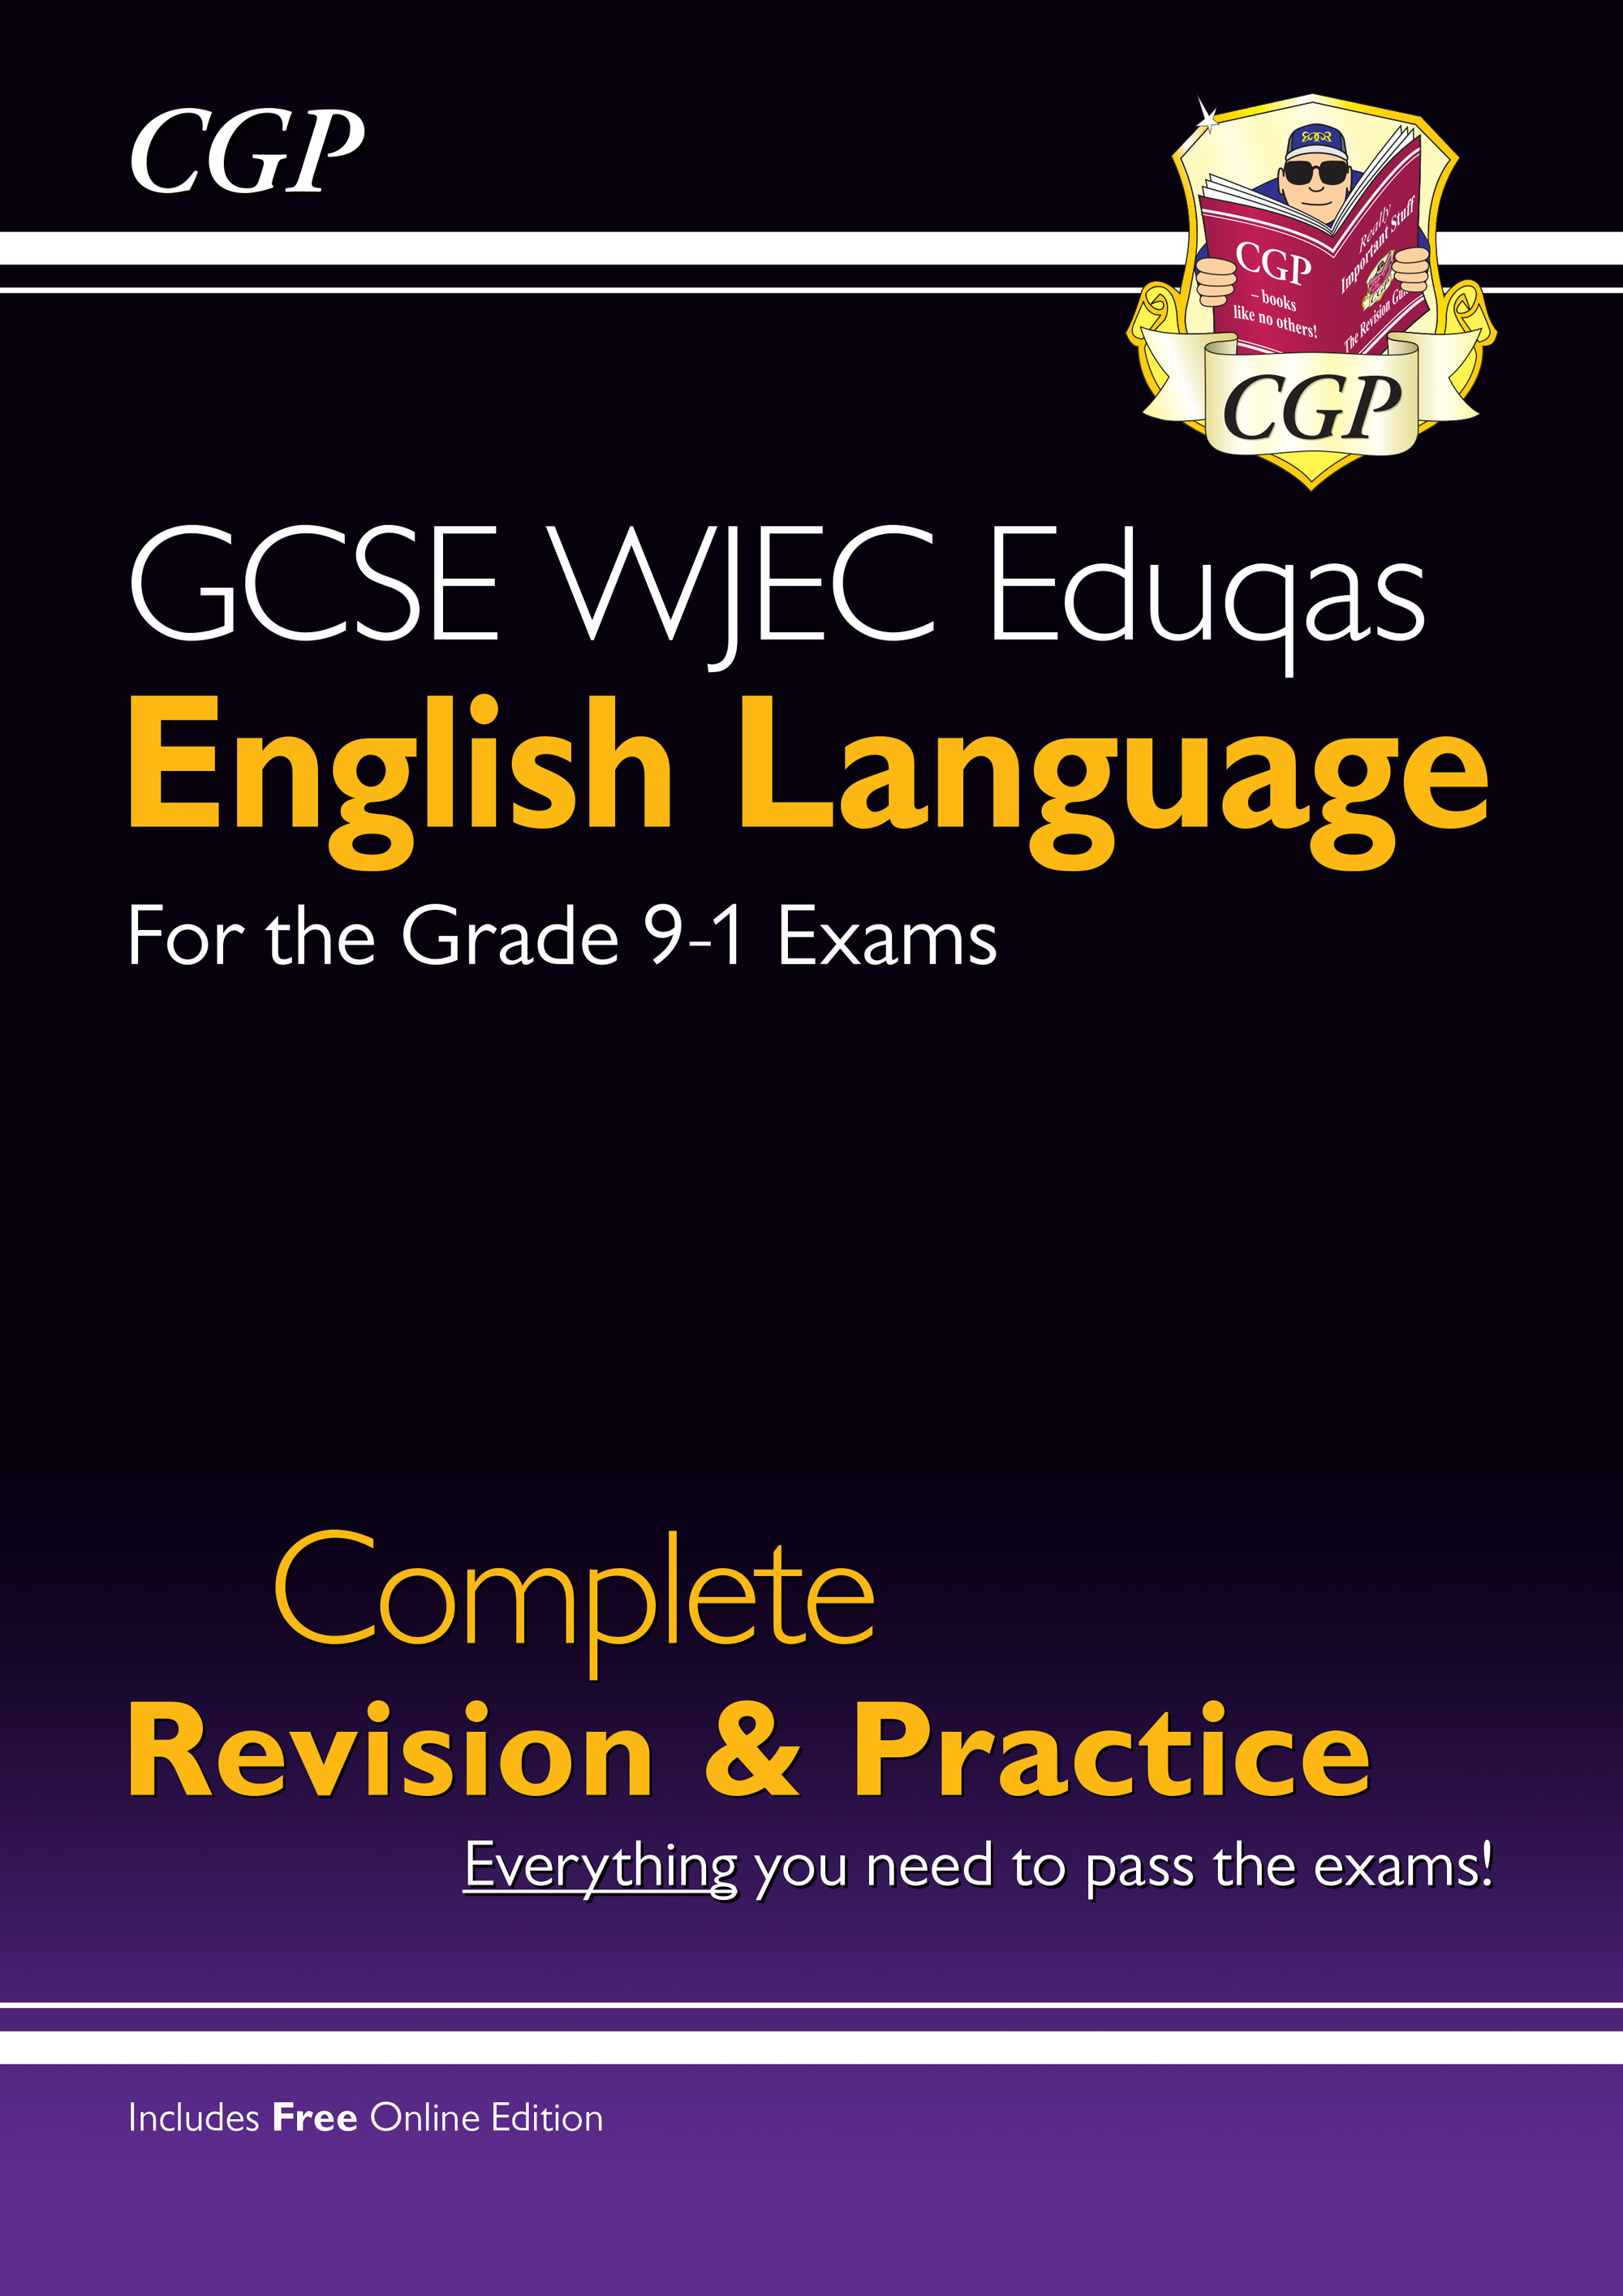 ENWS41 - New Grade 9-1 GCSE English Language WJEC Eduqas Complete Revision & Practice (with Online E